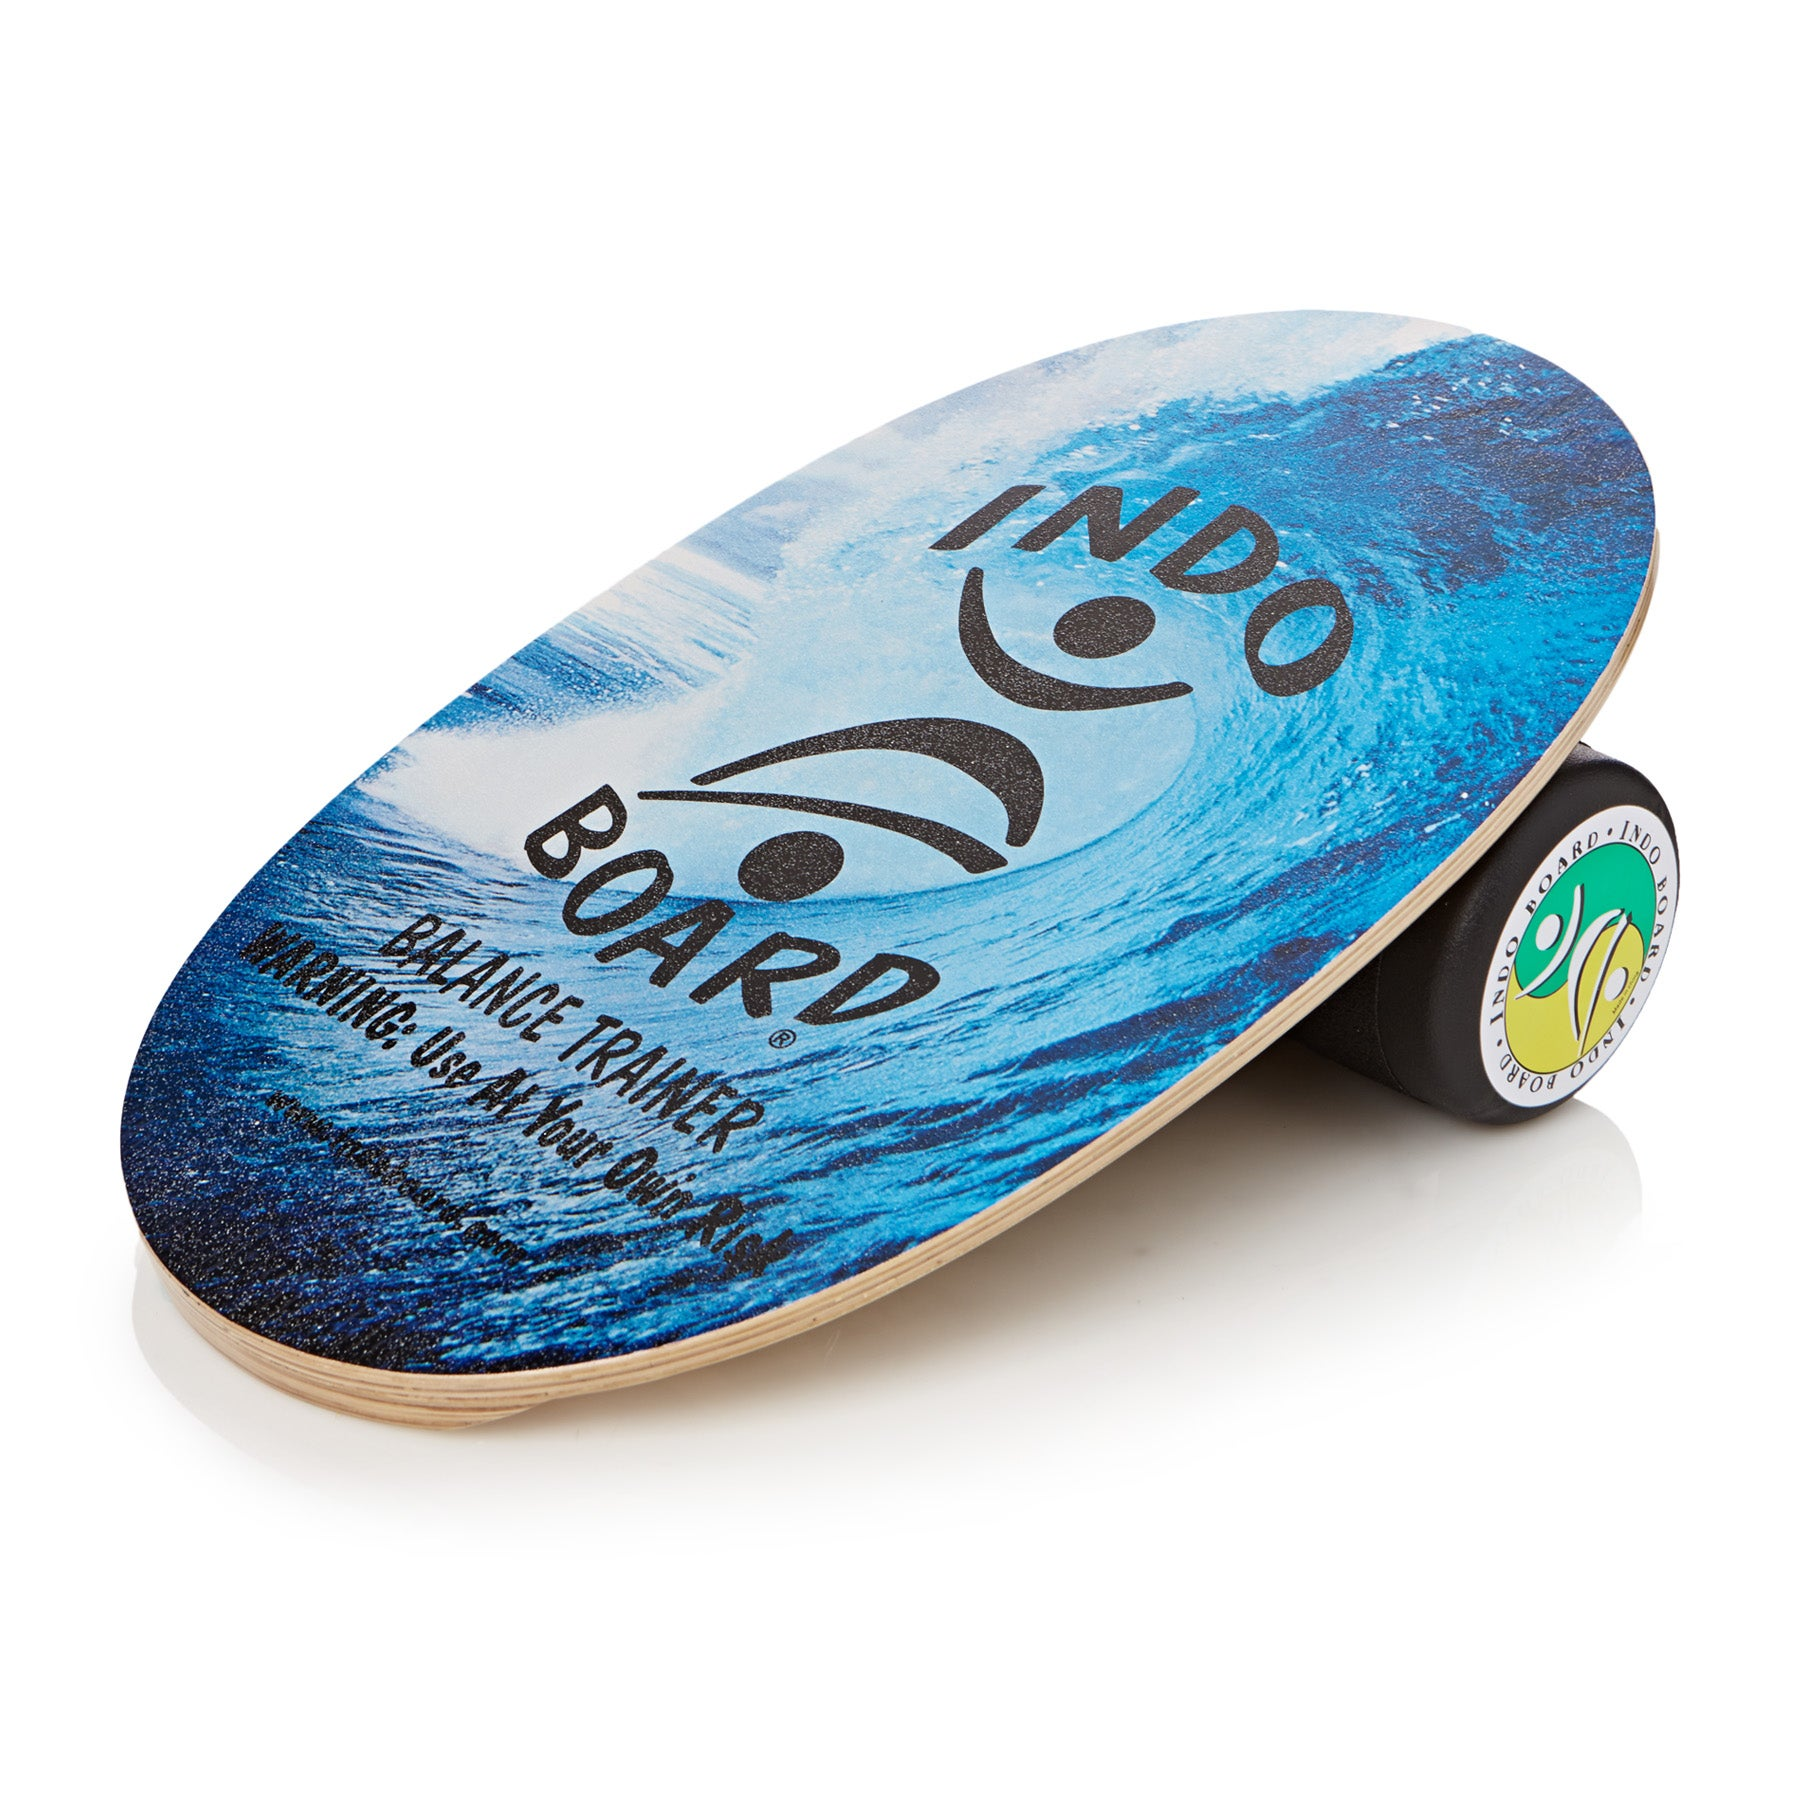 Balance Board With Roller: Indo Boards Original Graphics Deck And Roller Balance